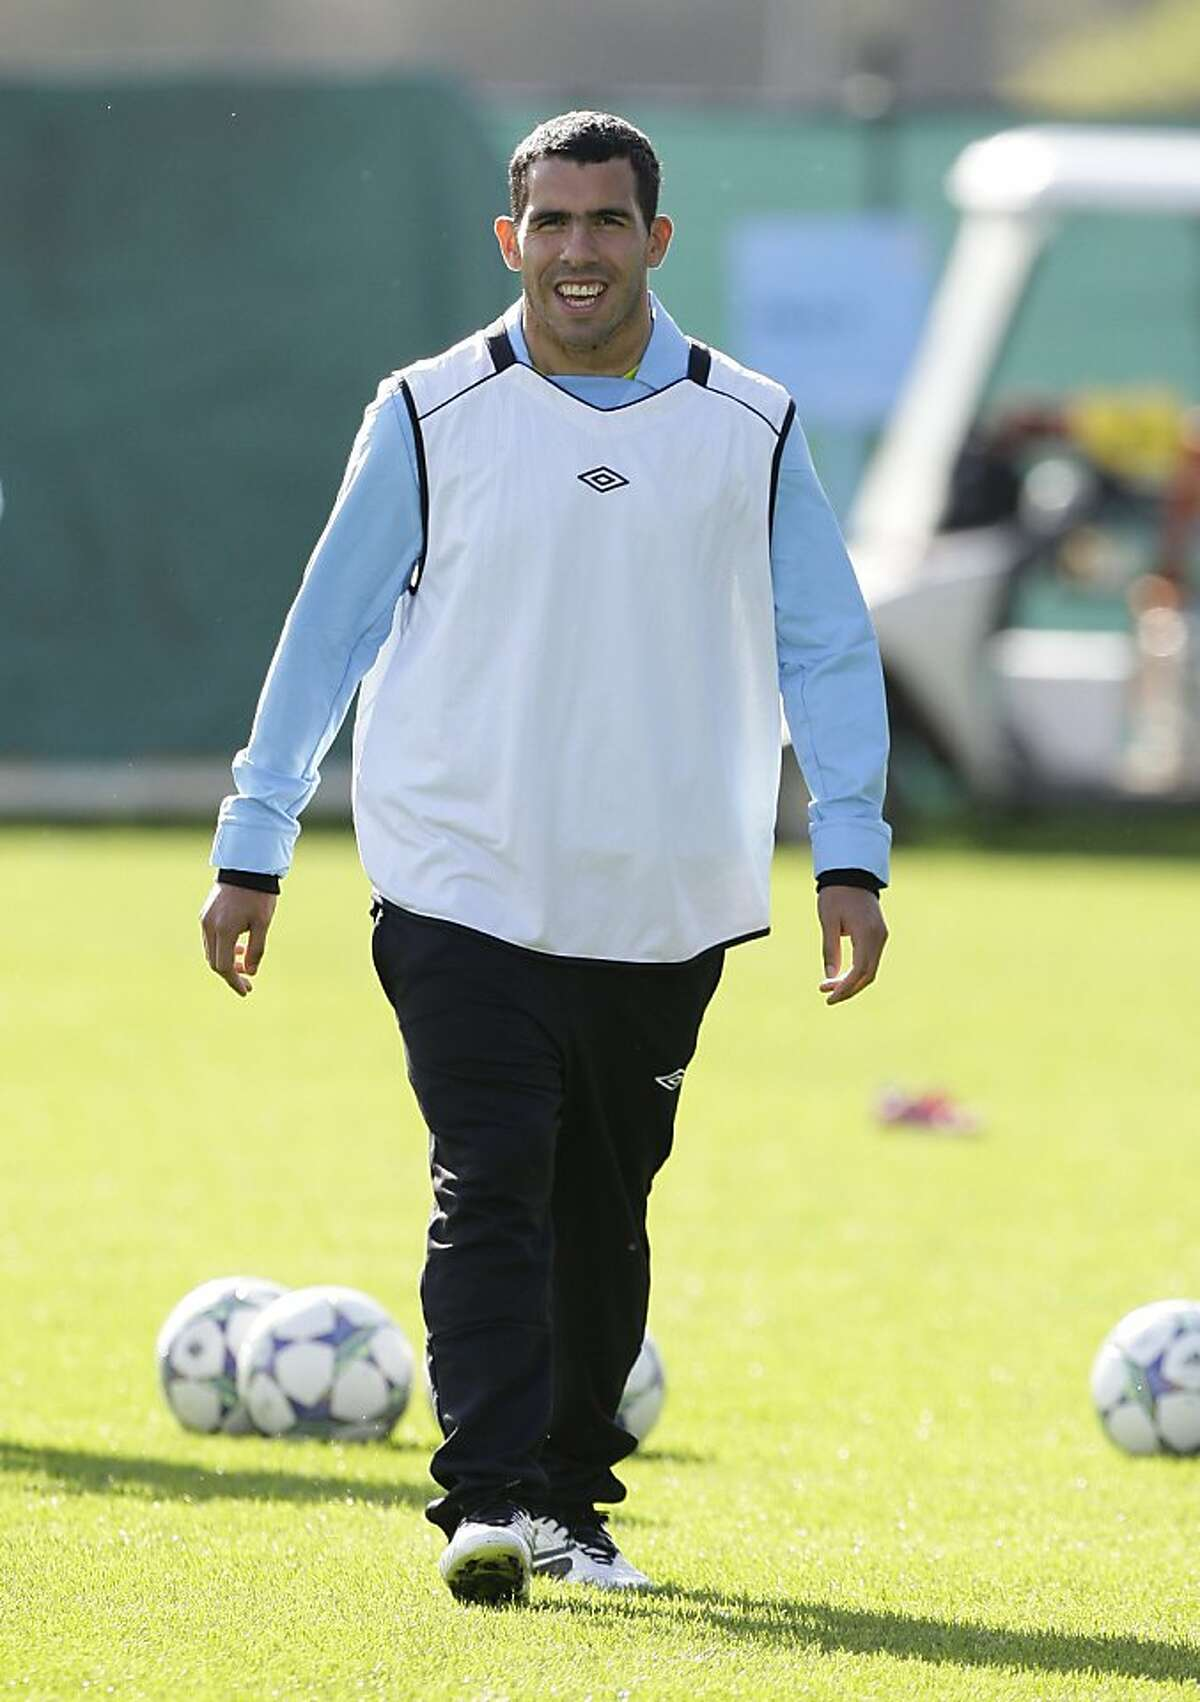 Manchester City's Carlos Tevez trains with teammates at Carrington training ground, Manchester, England, Monday Sept. 26, 2011. Manchester City will play Bayern Munich in Germany on Tuesday in a Champions League Group A soccer match. (AP Photo/Jon Super)